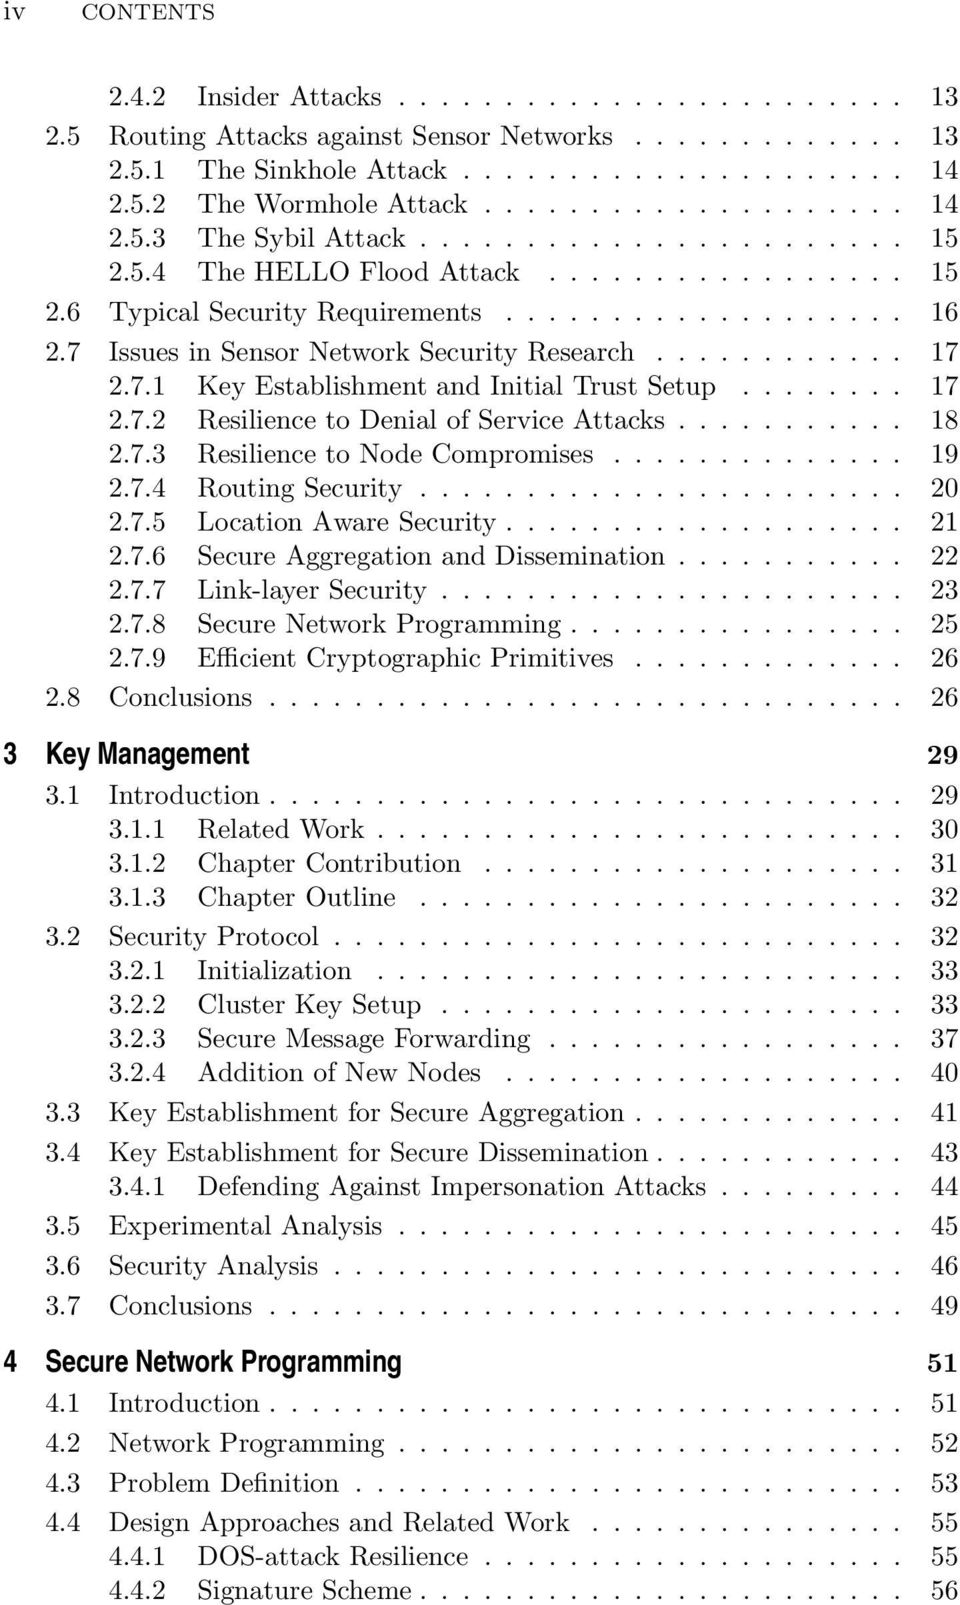 7 Issues in Sensor Network Security Research............ 17 2.7.1 Key Establishment and Initial Trust Setup........ 17 2.7.2 Resilience to Denial of Service Attacks........... 18 2.7.3 Resilience to Node Compromises.